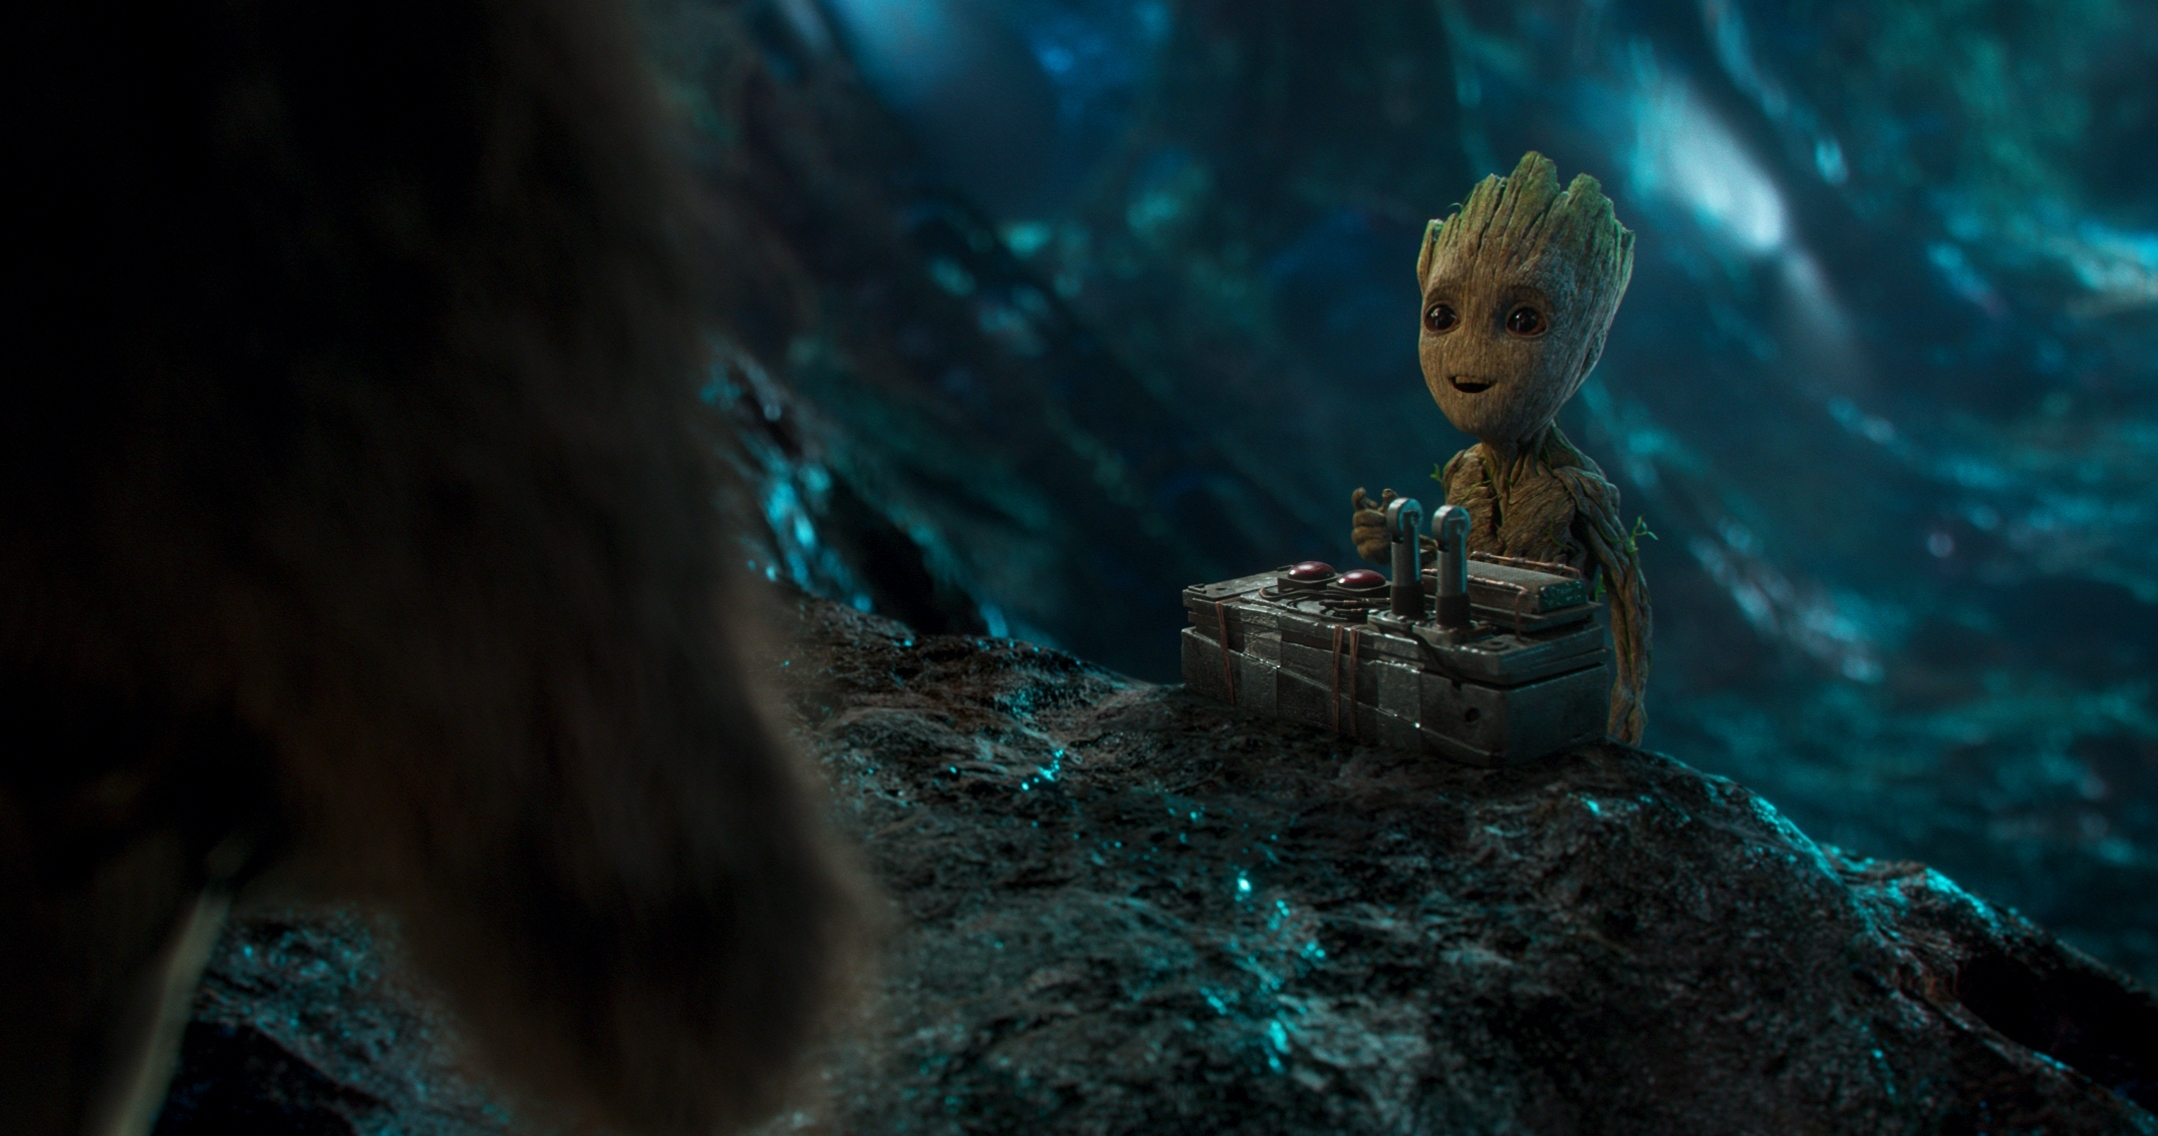 10 Latest Baby Groot Hd Wallpaper Full Hd 1080p For Pc Background